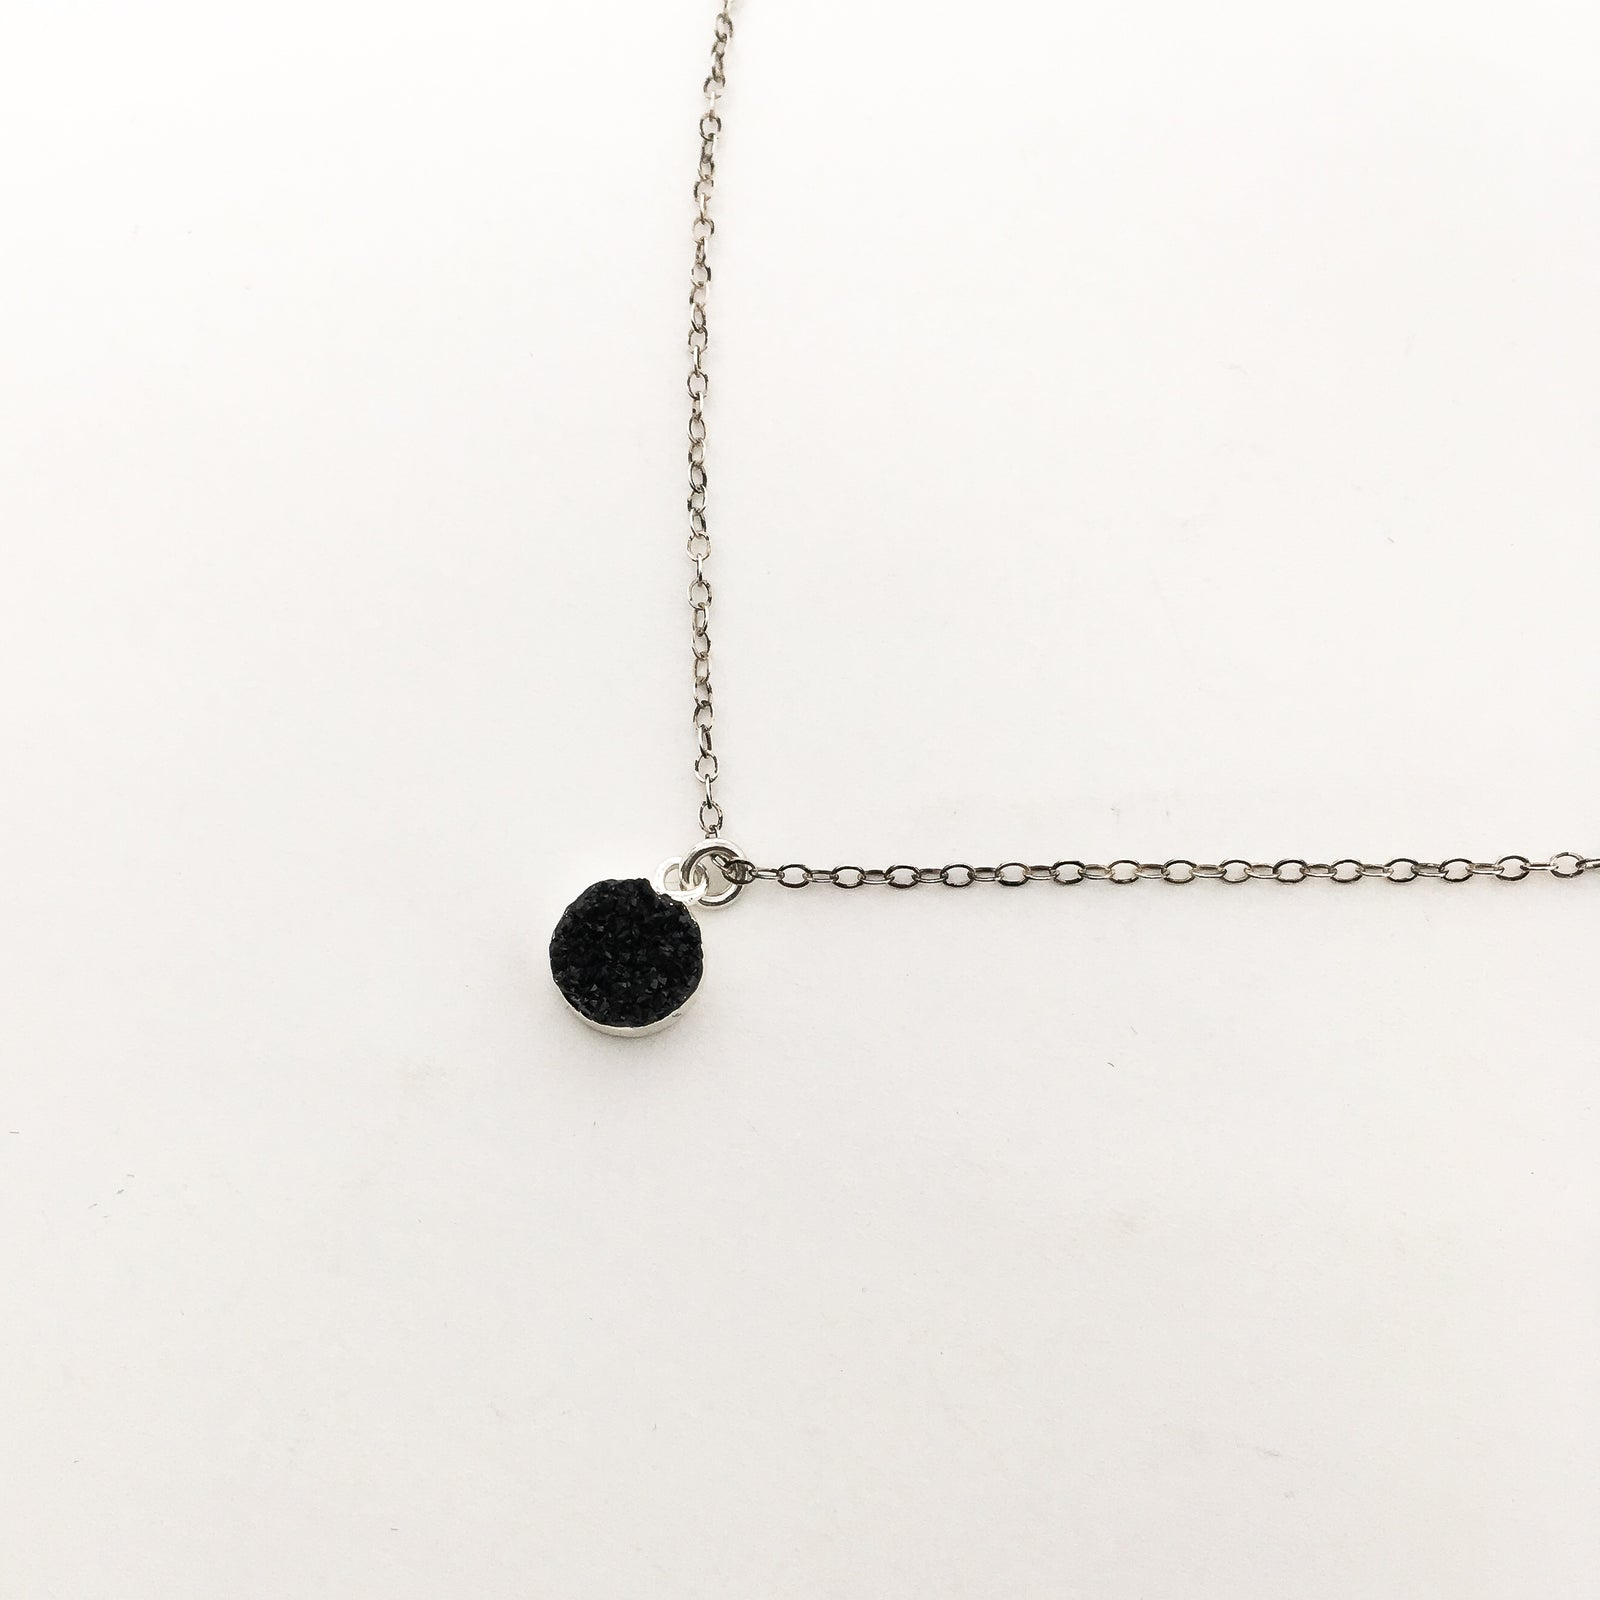 BLACK DRUZY STONE SPHERE NECKLACE | STERLING SILVER